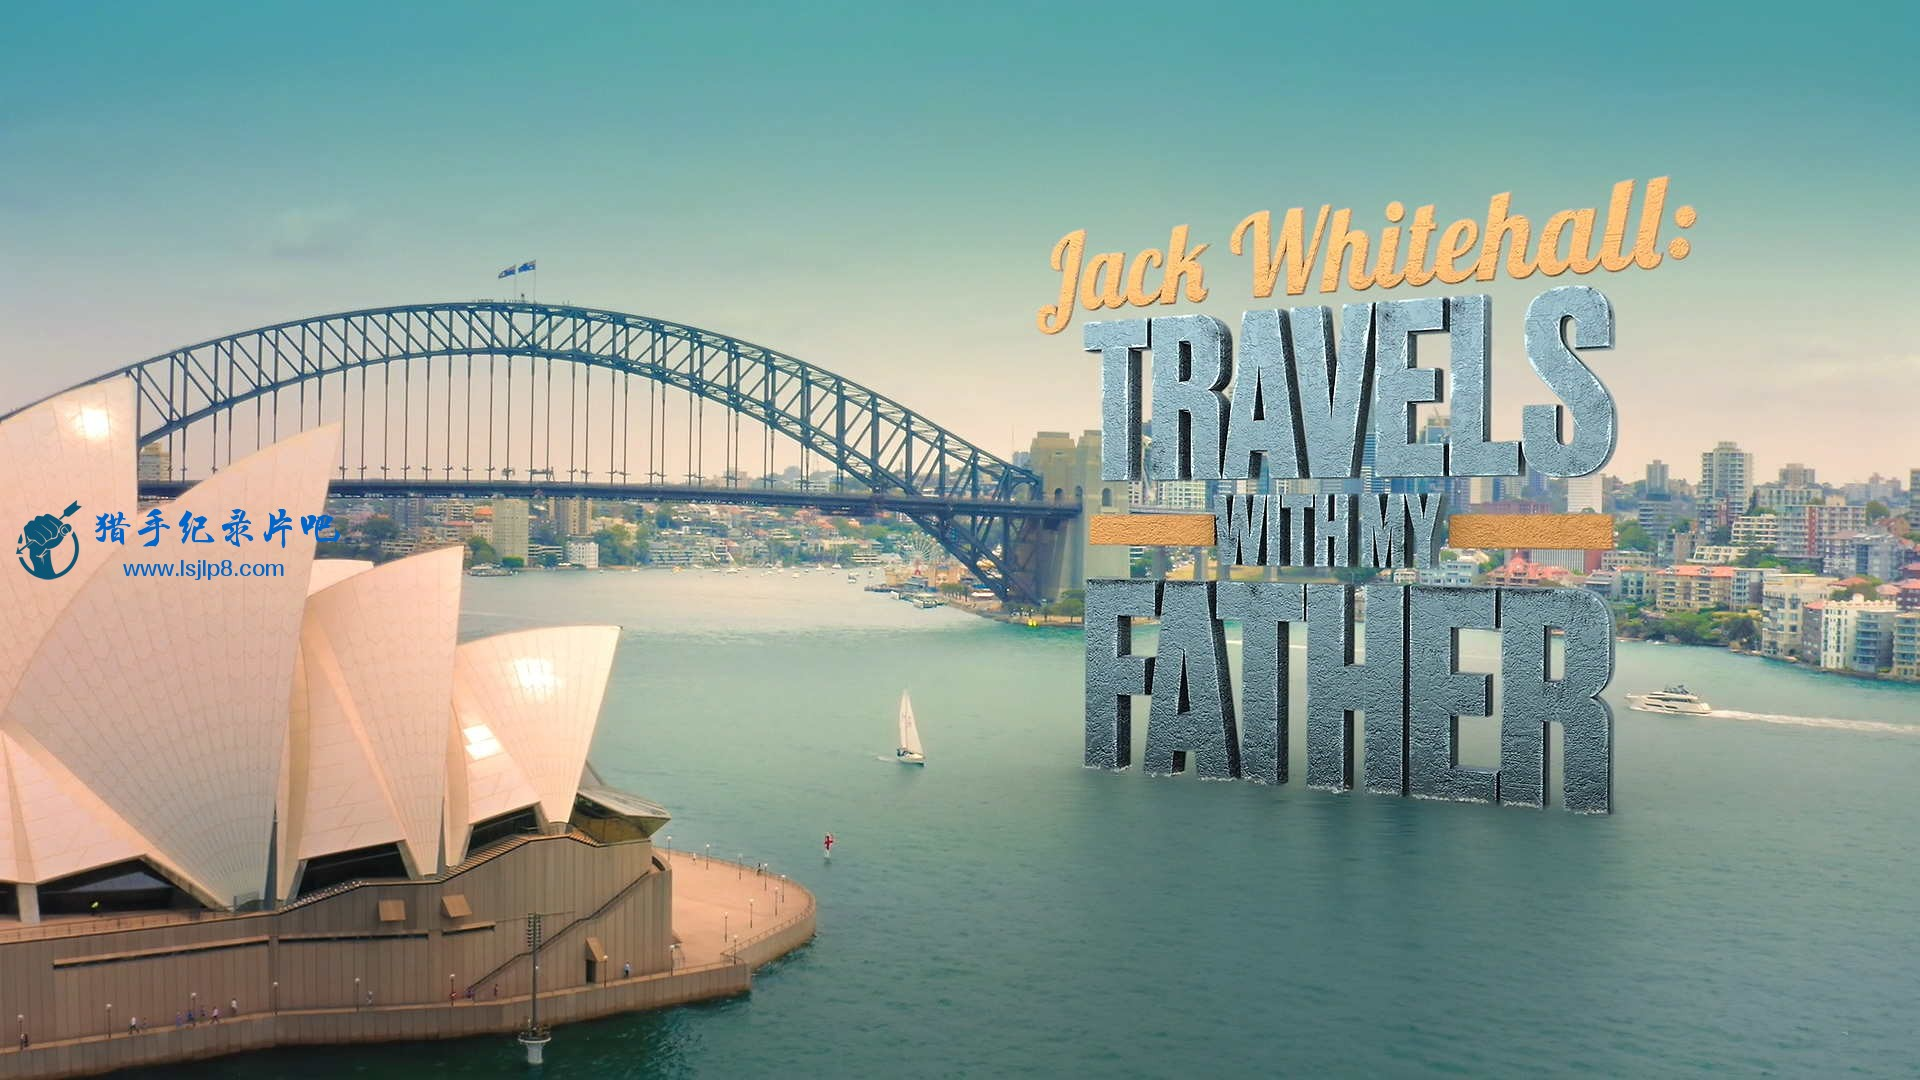 Jack.Whitehall.Travels.With.My.Father.S04E01.1080p.NF.WEB-DL.DDP5.1.H.264-TEPES..jpg